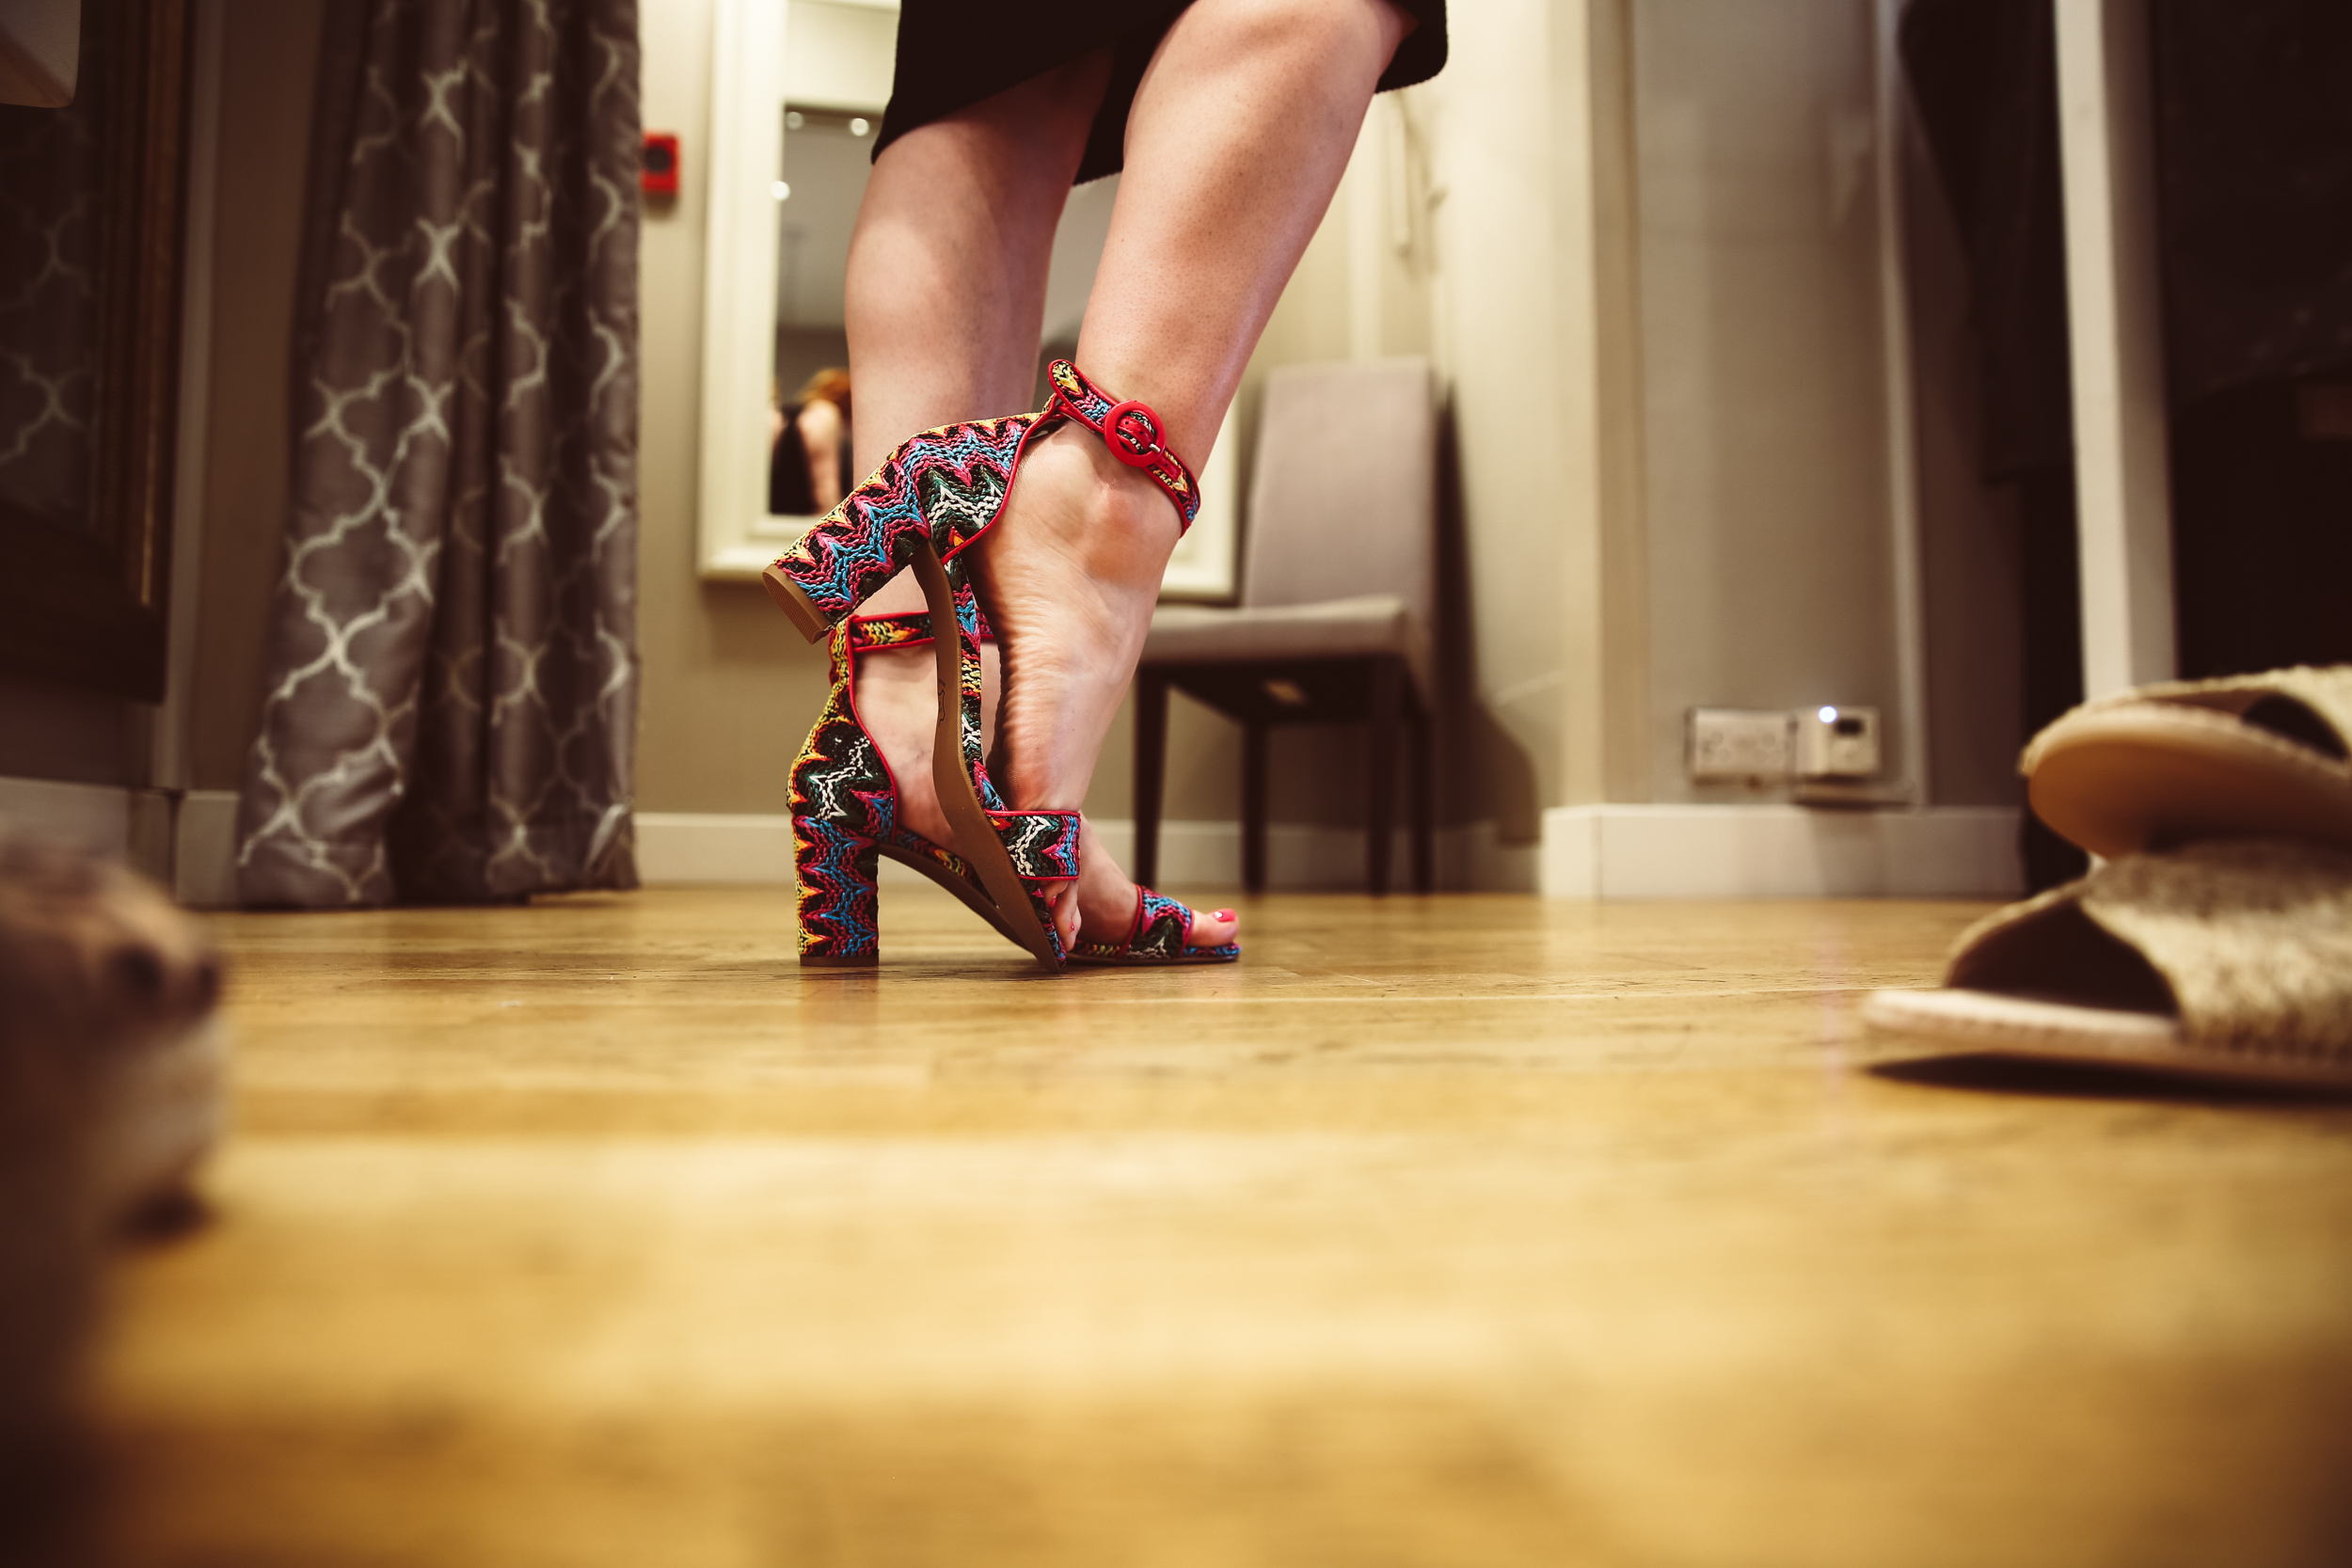 Quite possibly the funnest and most-colourful pair of Italian heels I've ever owned!